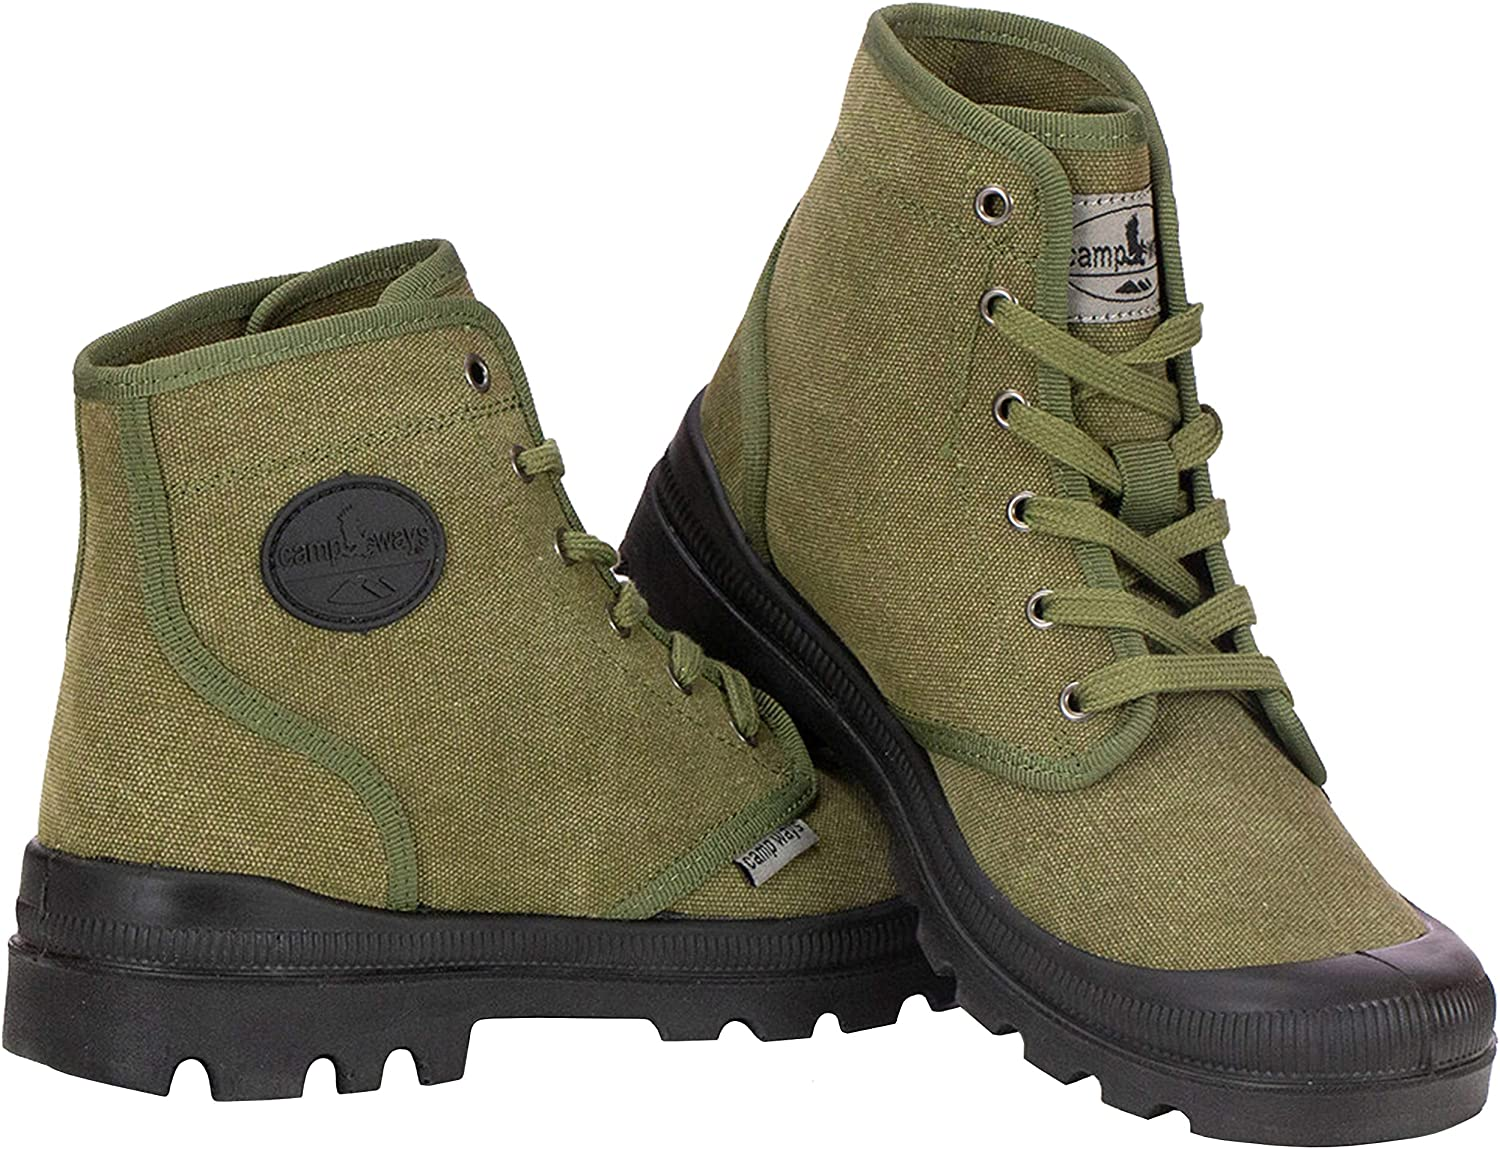 Rugged Outdoor Ranger Boot Farm Blue Mens Hiking Boots Waterproof High Top Canvas Trekking Ankle Shoes for Men with Cushioned Insole with Arch Support /& Rubber Sole